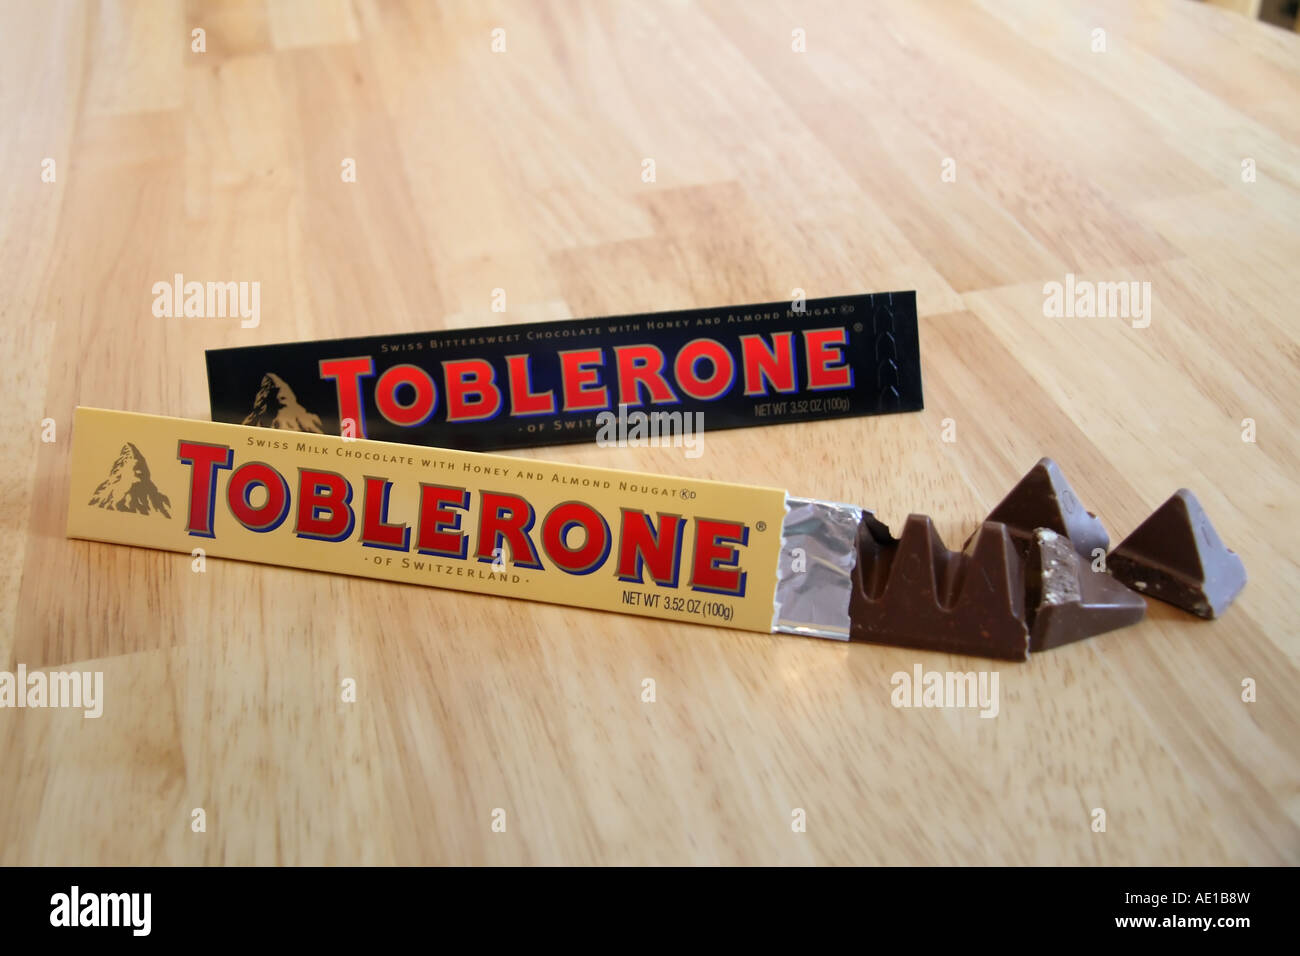 A swiss import, here in the United States, Toblerone chocolate ...